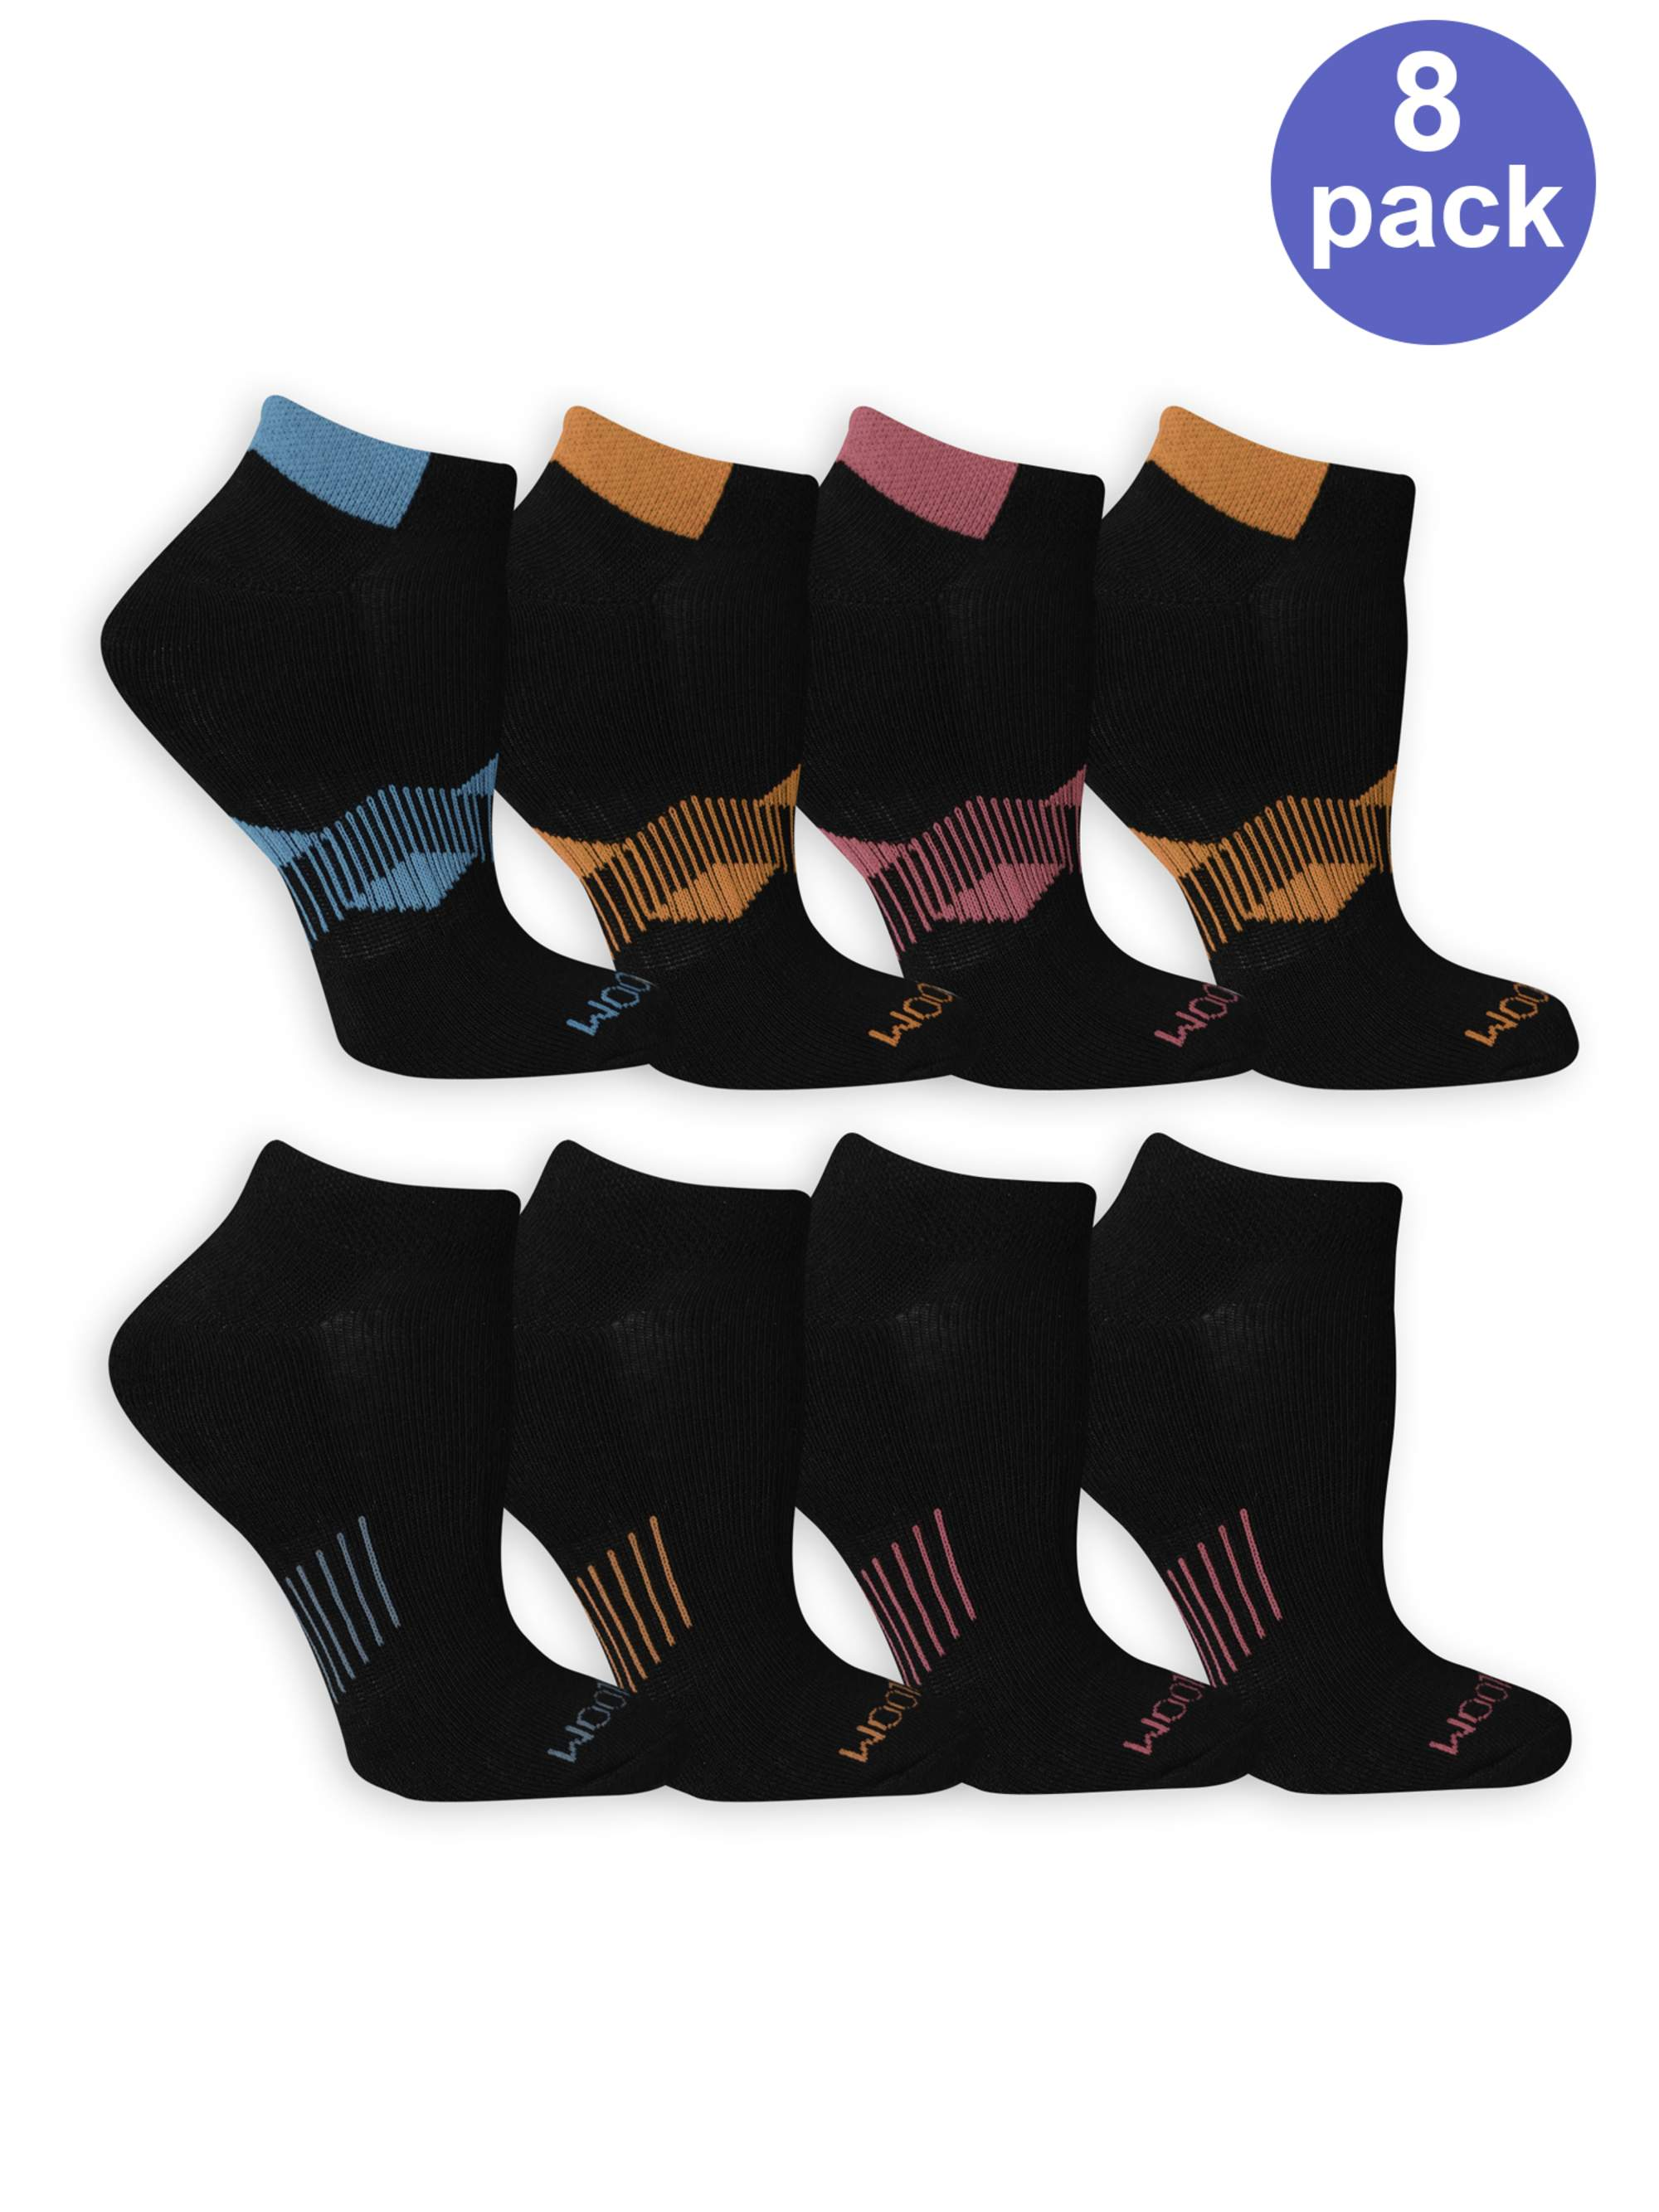 Women's Everyday Active Cushioned No Show Socks 8 Pair